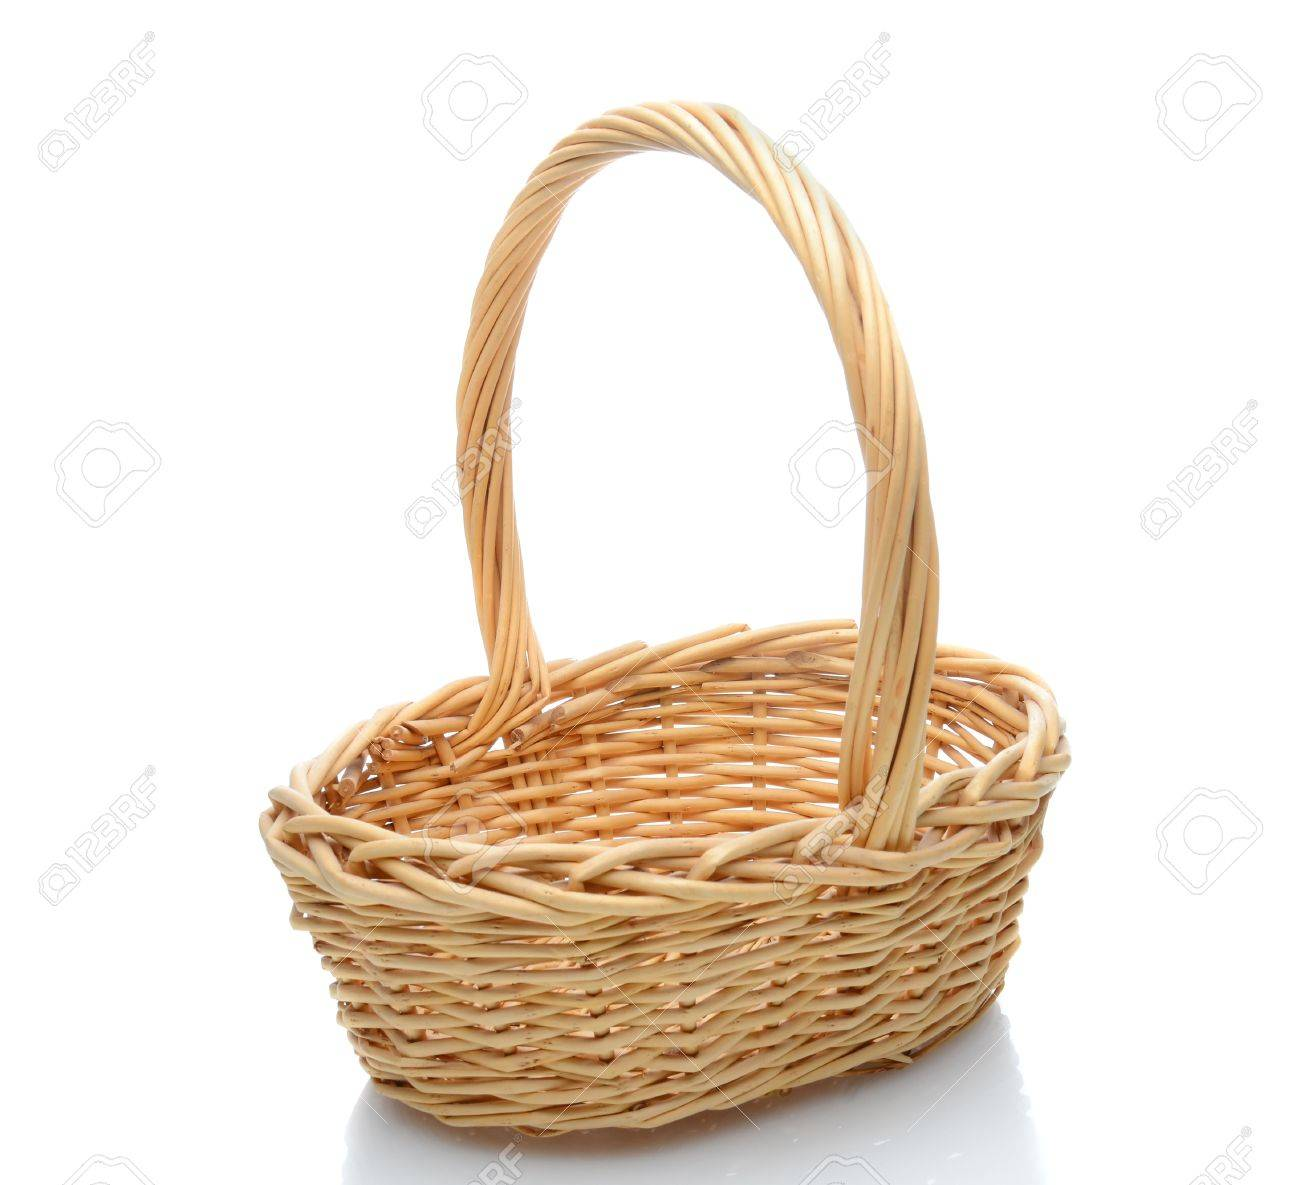 White wicker baskets with handle - Oval Wicker Basket With Handle Isolated On A White Background With Slight Reflection Stock Photo